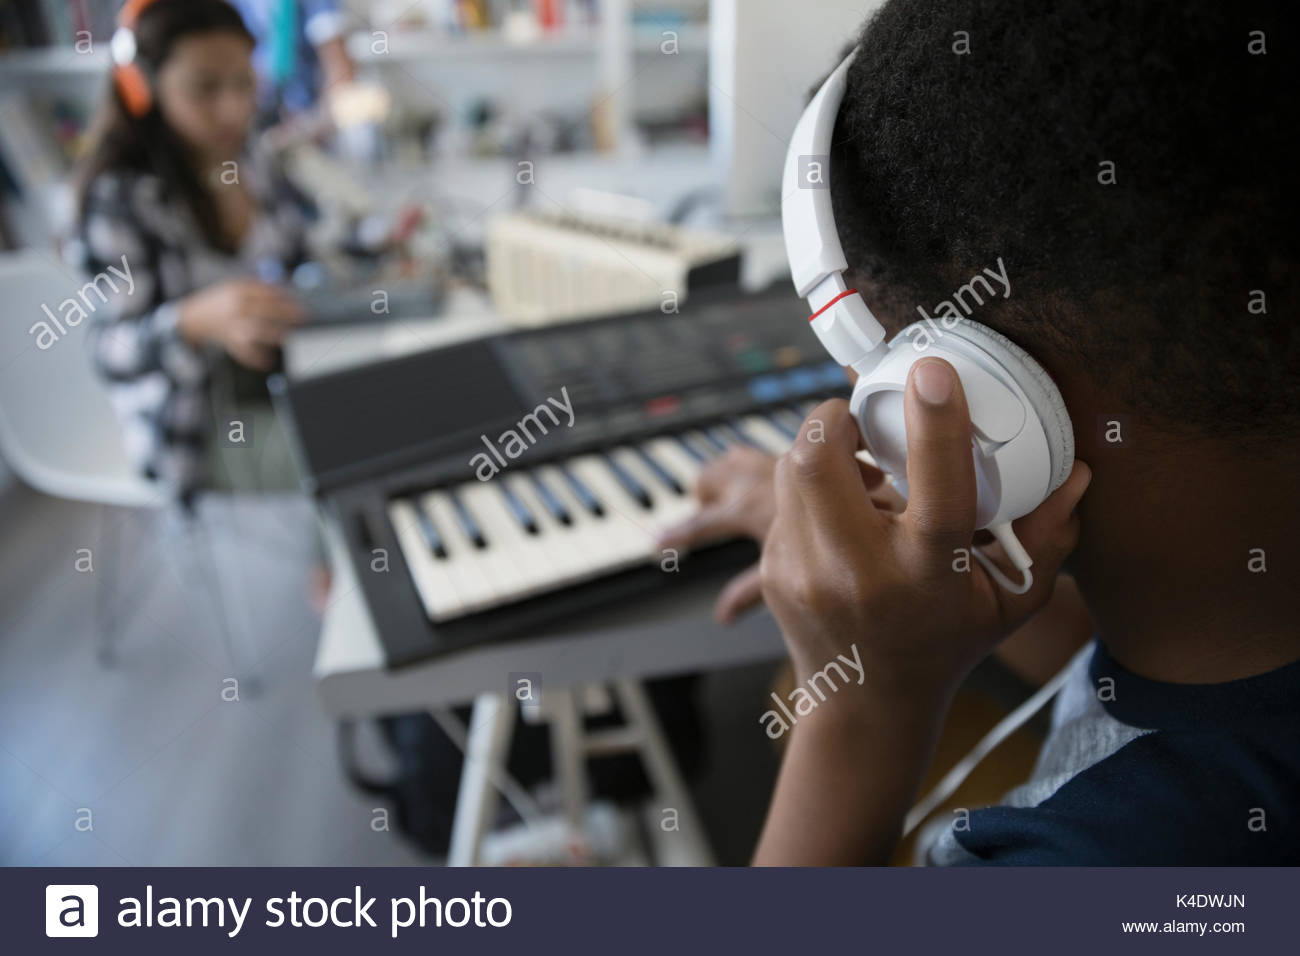 Teenage boy with headphones playing electric piano - Stock Image